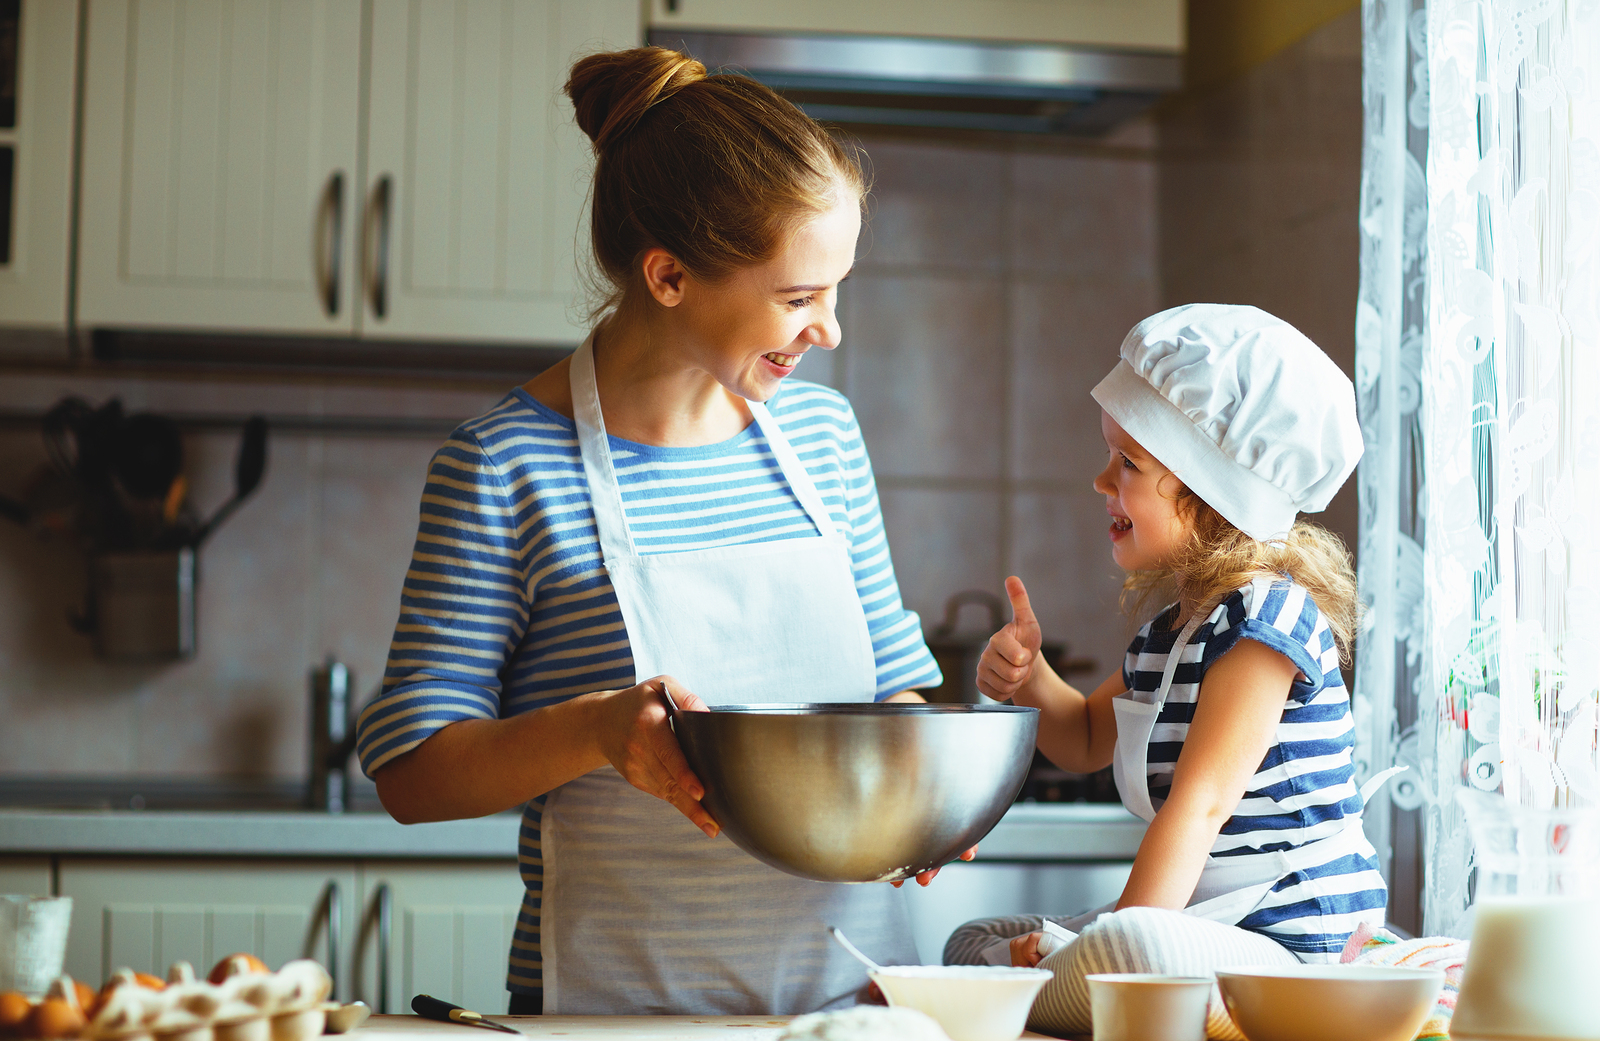 Here are a few ways to initiate more involvement in the kitchen.